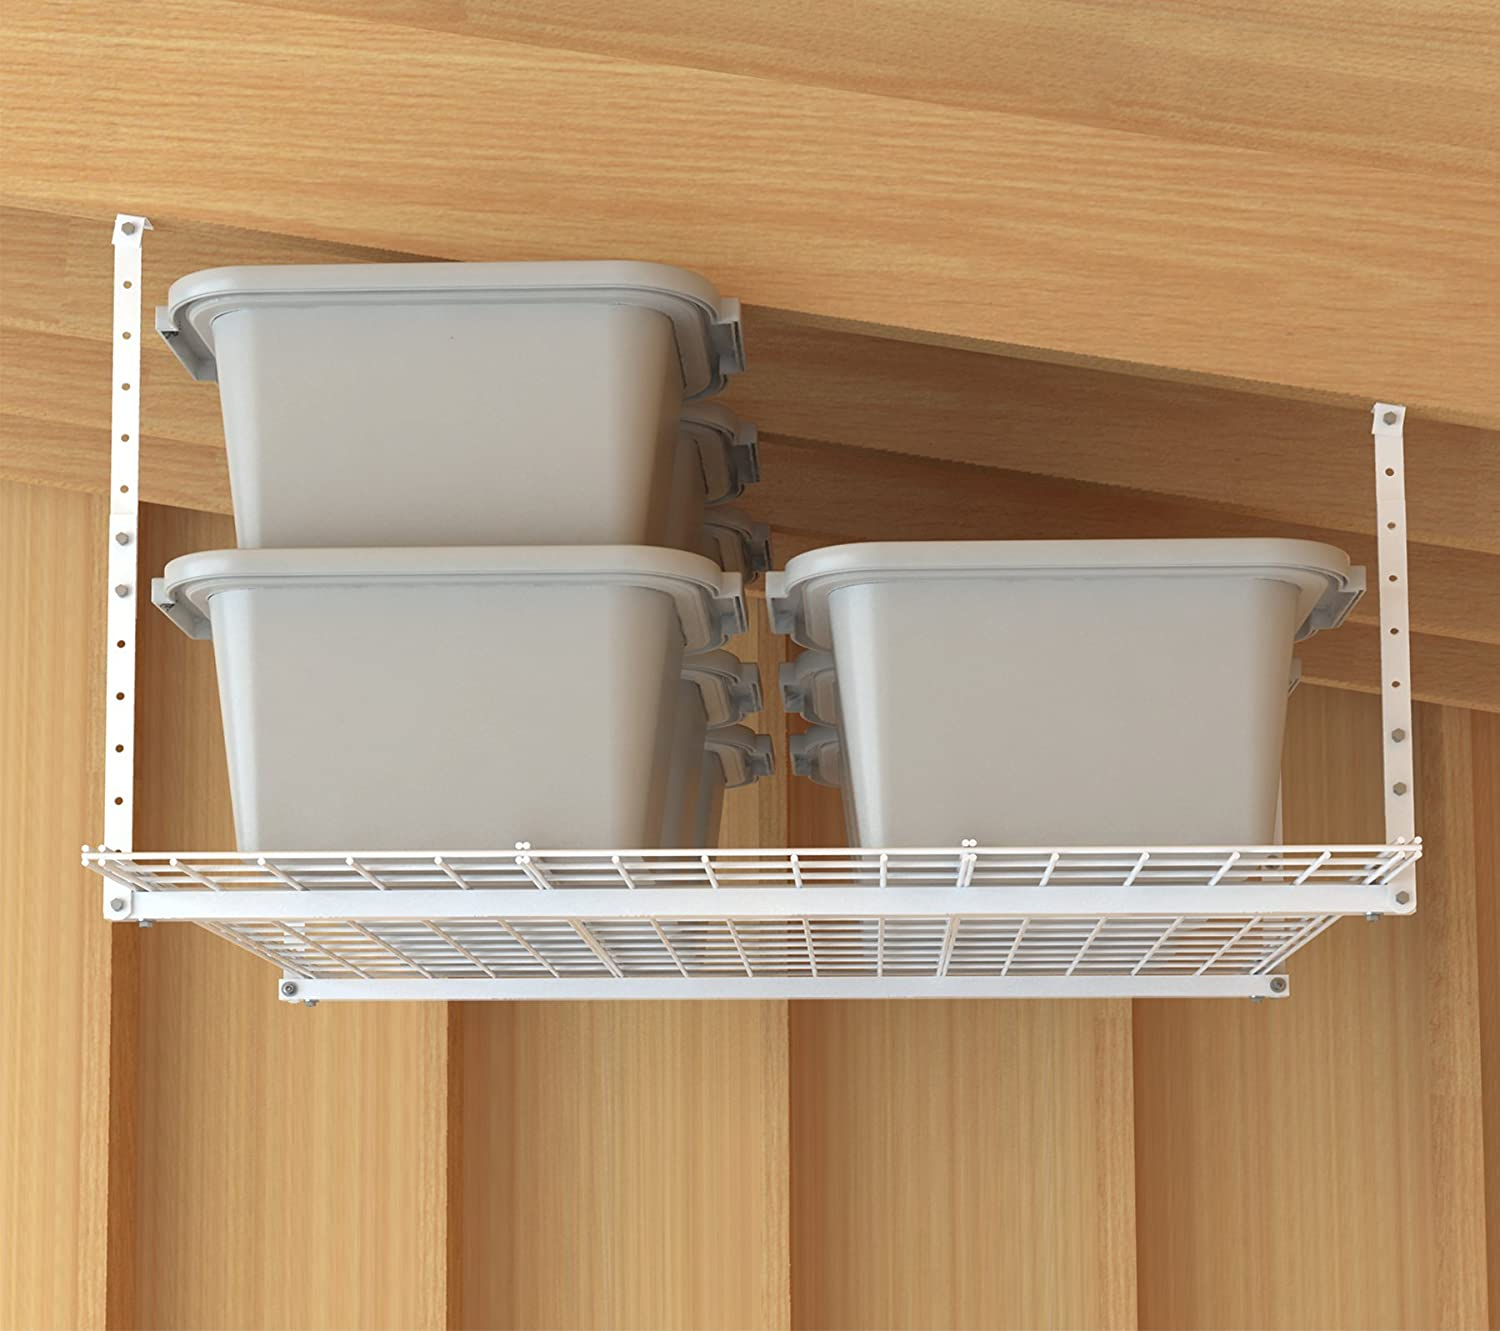 Amazon HyLoft 45 Inch by 45 Inch Overhead Storage System